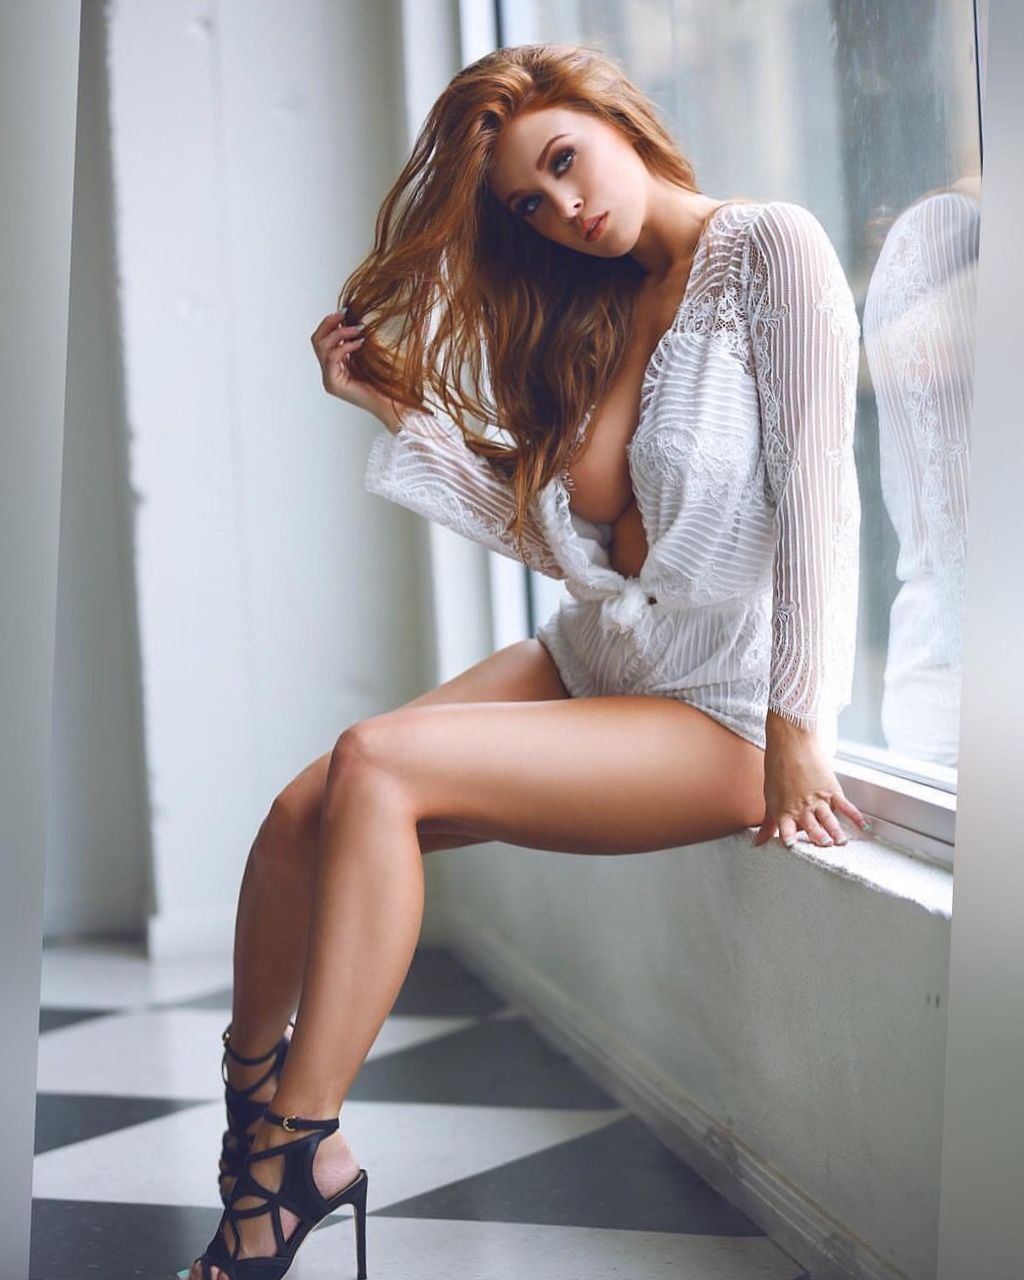 lake lure asian personals Lake lure dating site, lake lure personals, lake lure singles luvfreecom is a 100% free online dating and personal ads site there are a lot of lake lure singles searching romance, friendship, fun and more dates.